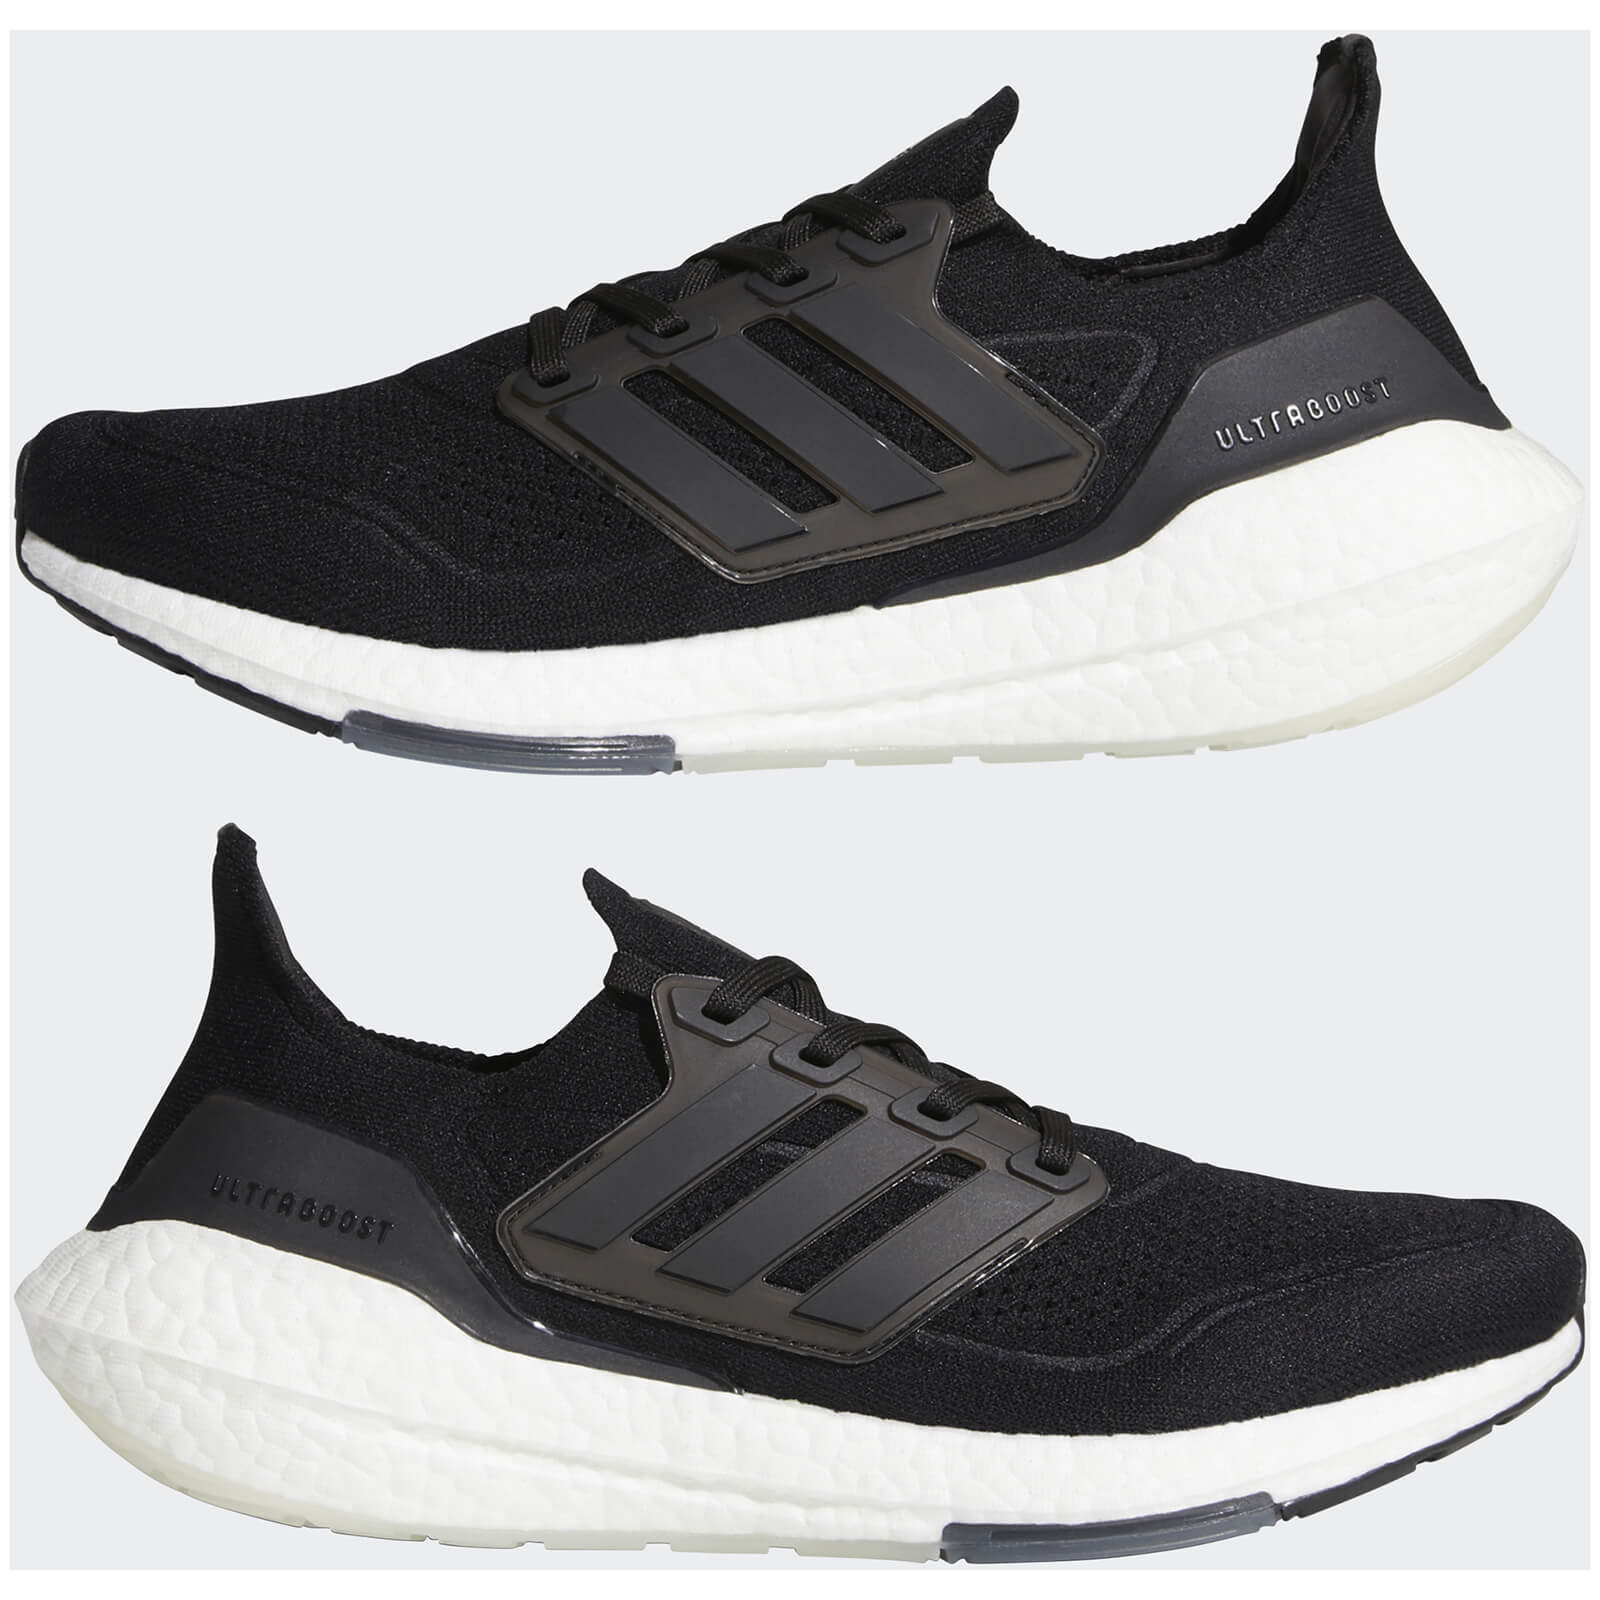 adidas Ultra Boost 21 Running Shoes - Core Black/Core Black/Grey Four - US 8.5/UK 8